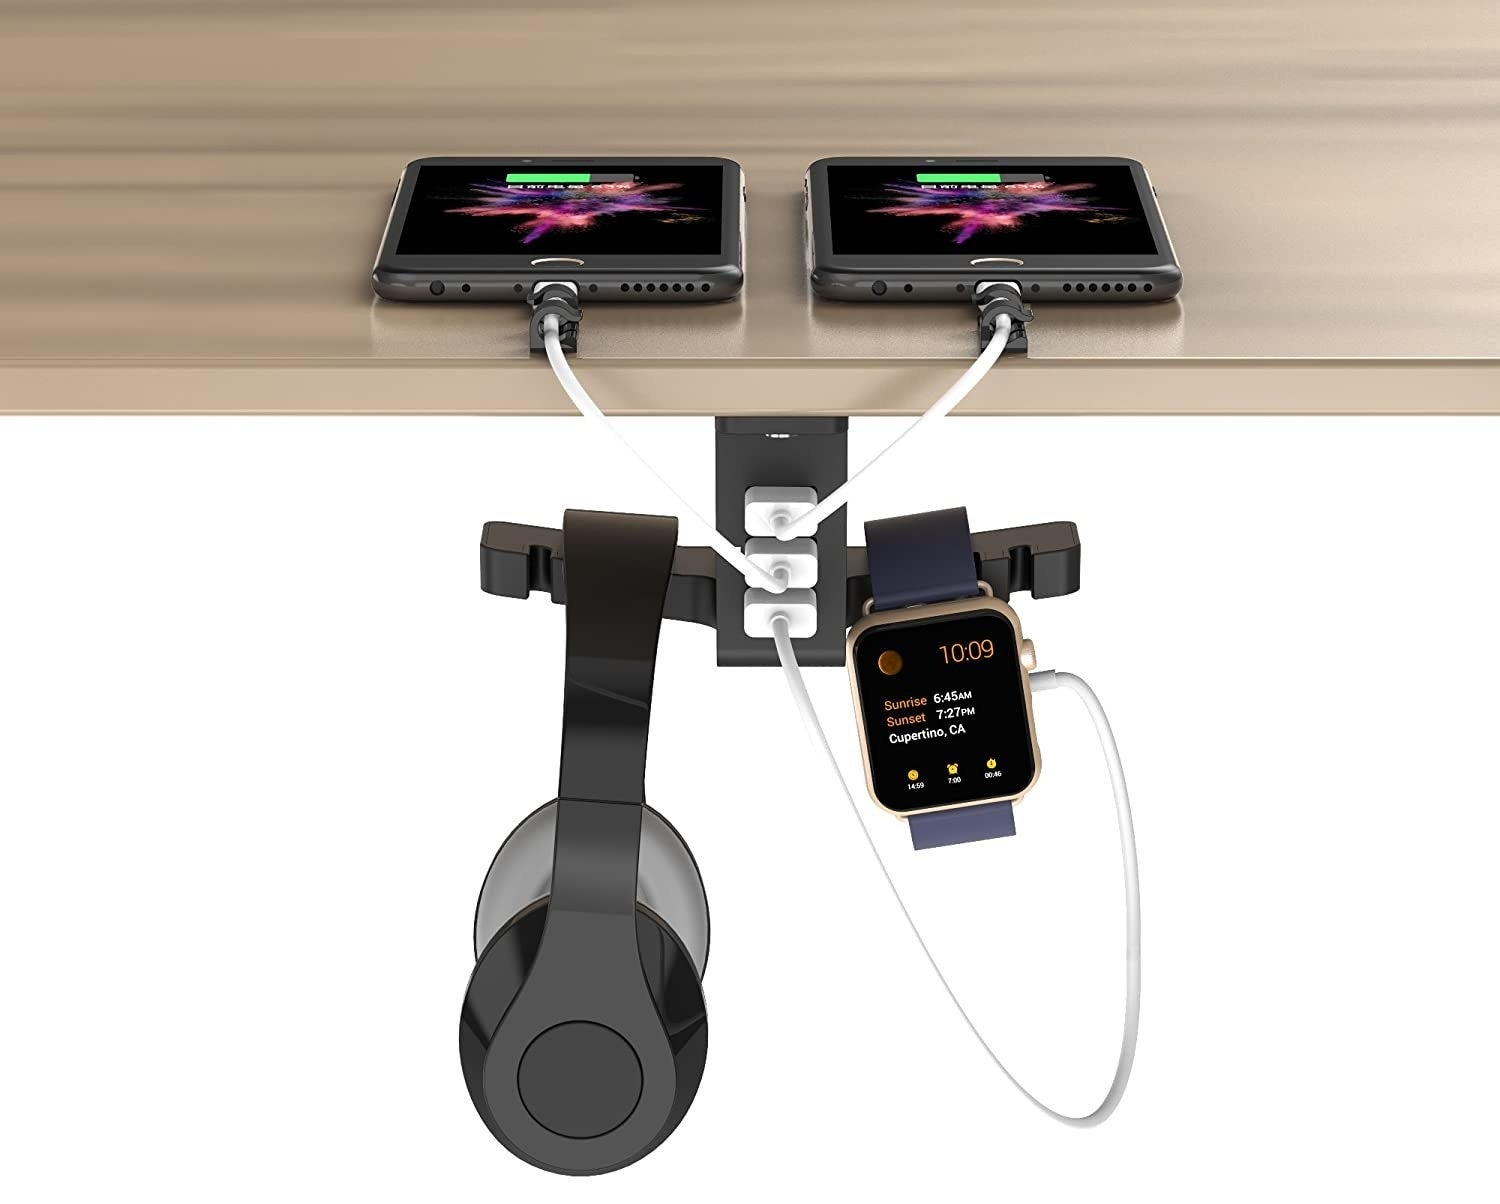 A pair of headphones and a digital watch hang from a hook under a table A pair of phones sit on the table